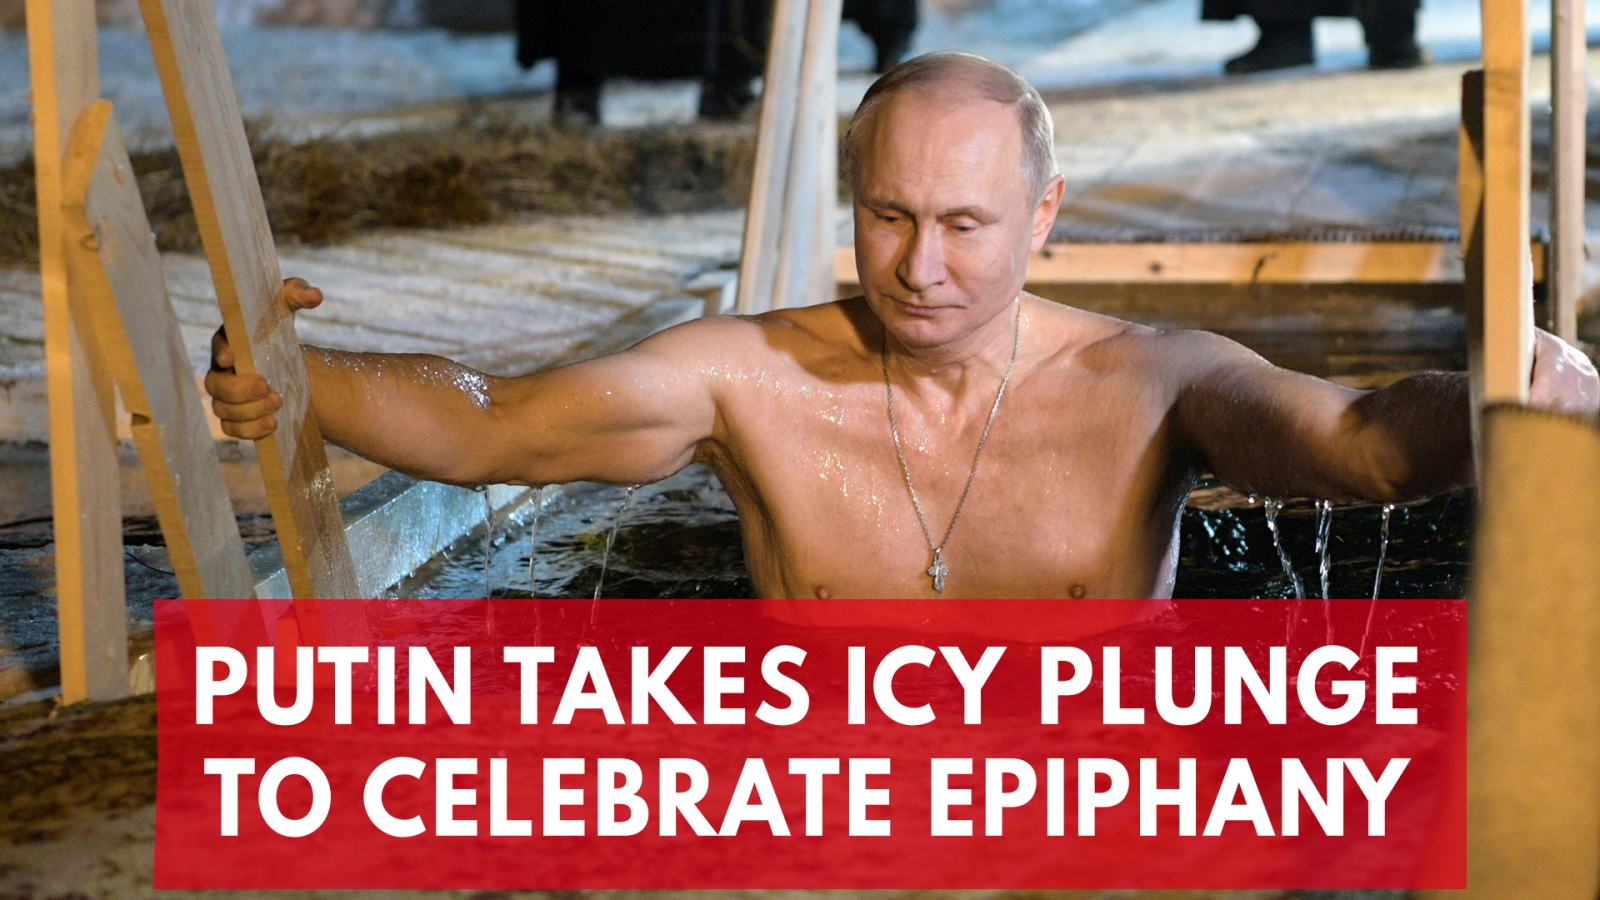 Putin takes icy plunge to celebrate epiphany